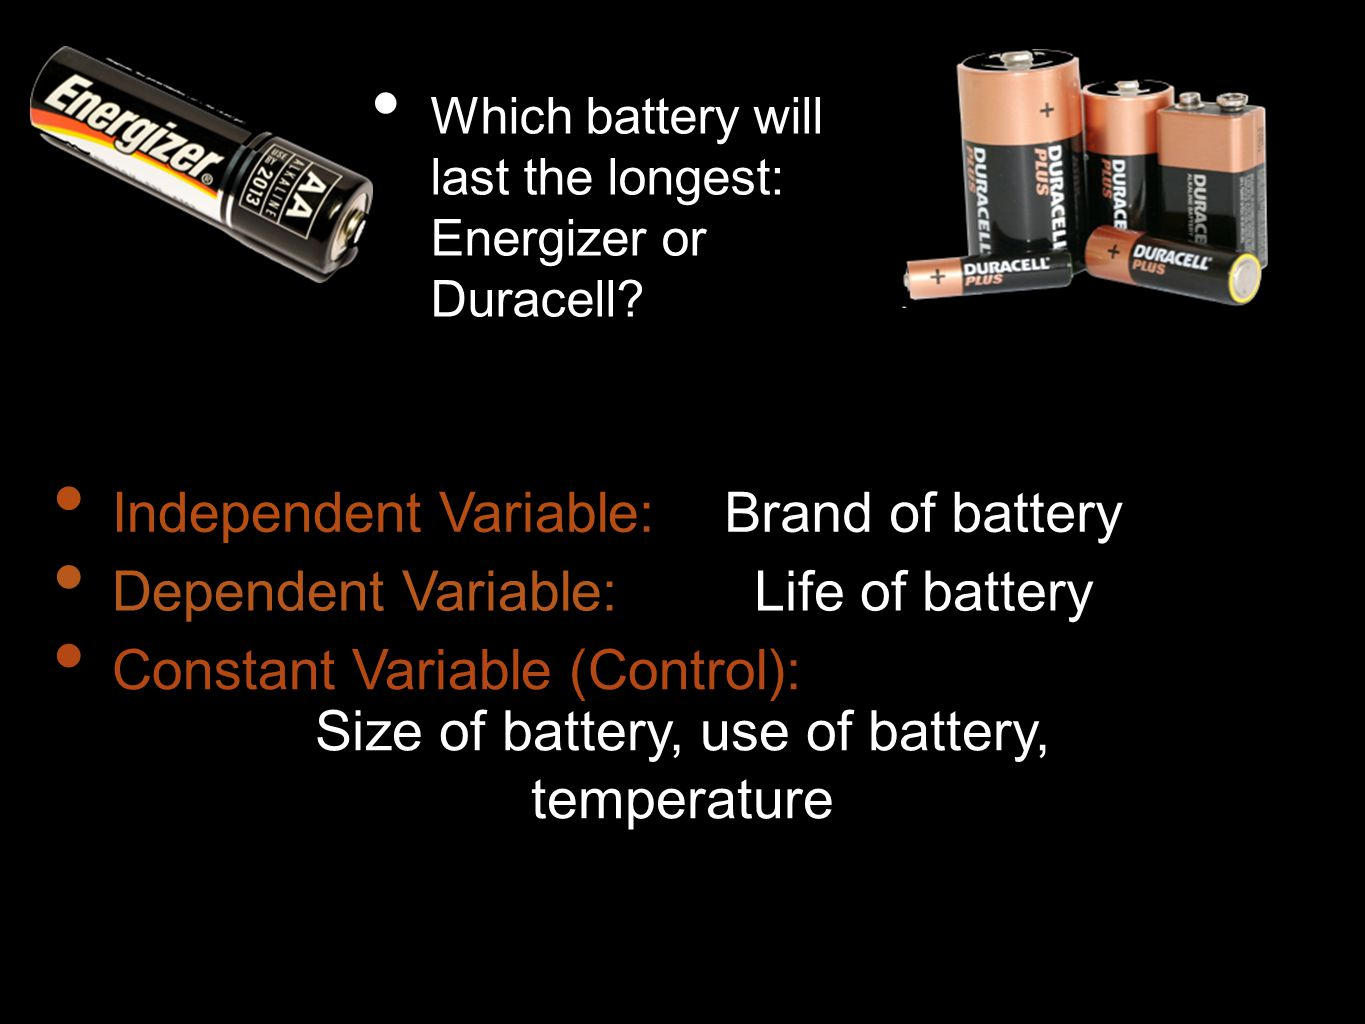 Size of battery, use of battery, temperature